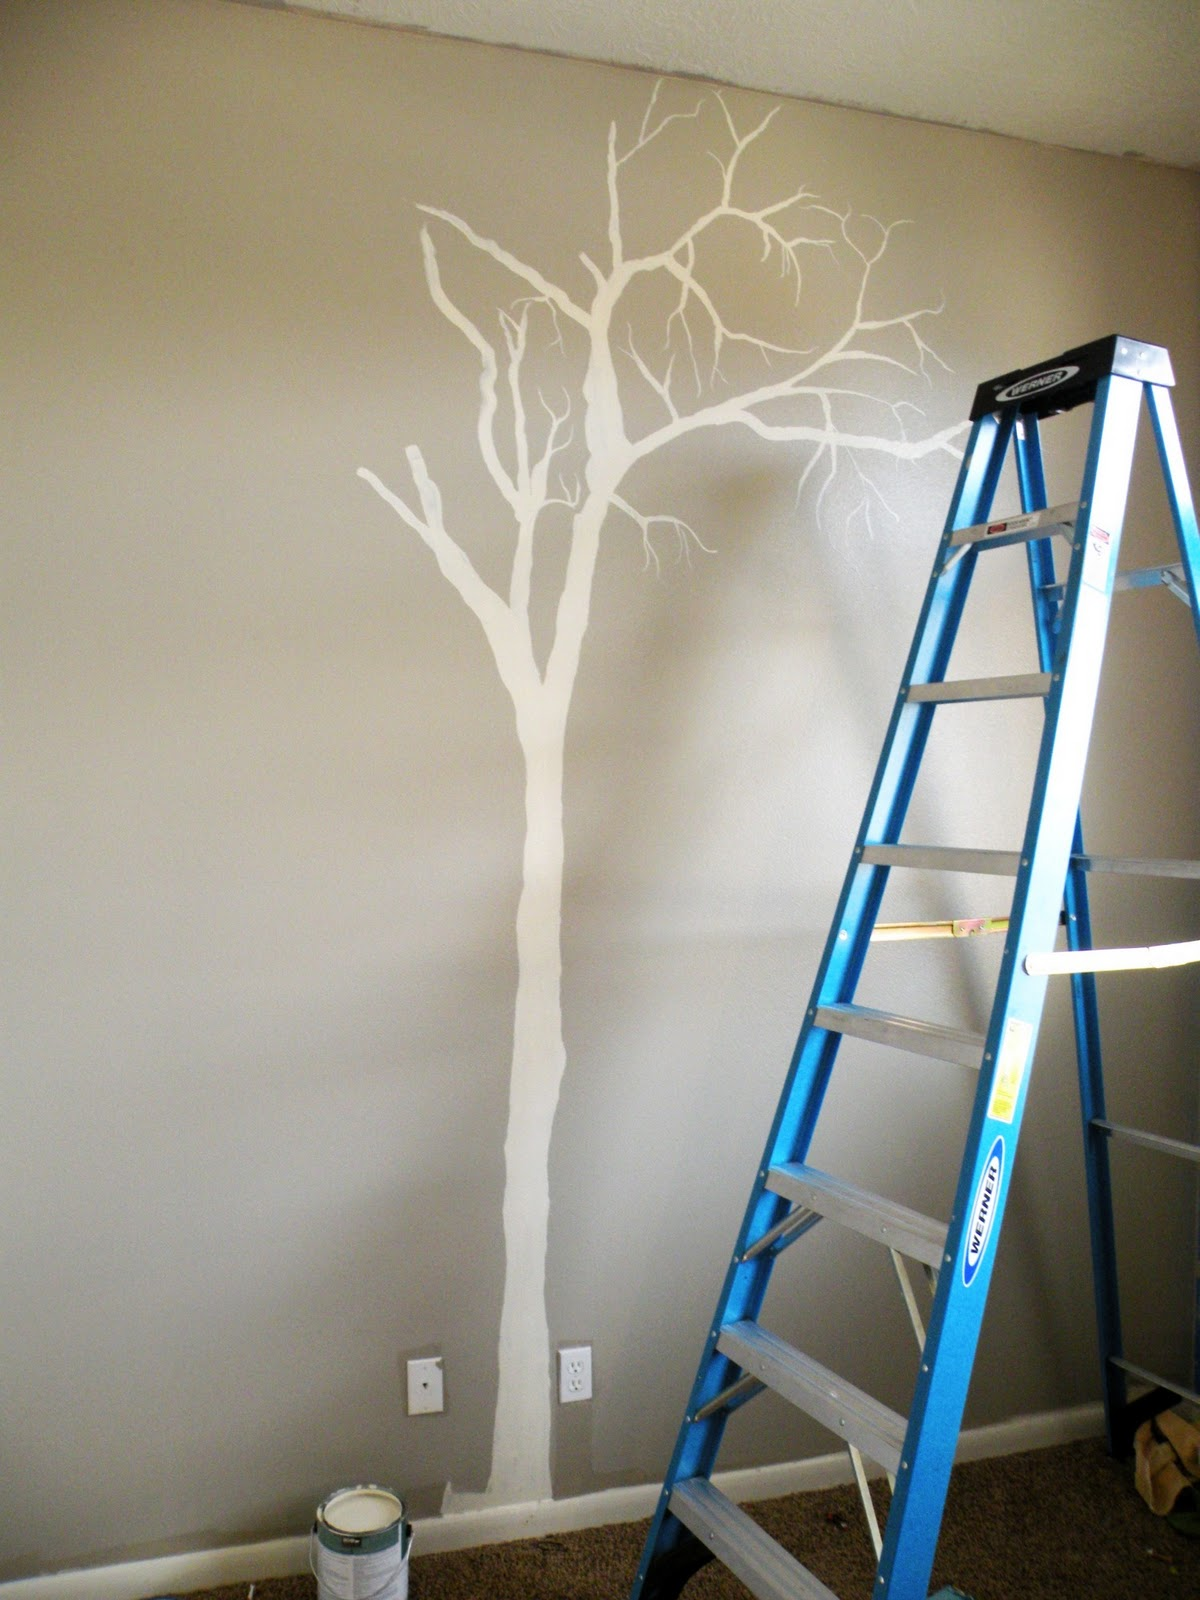 How to paint a tree on your wall - Vintage Revivals